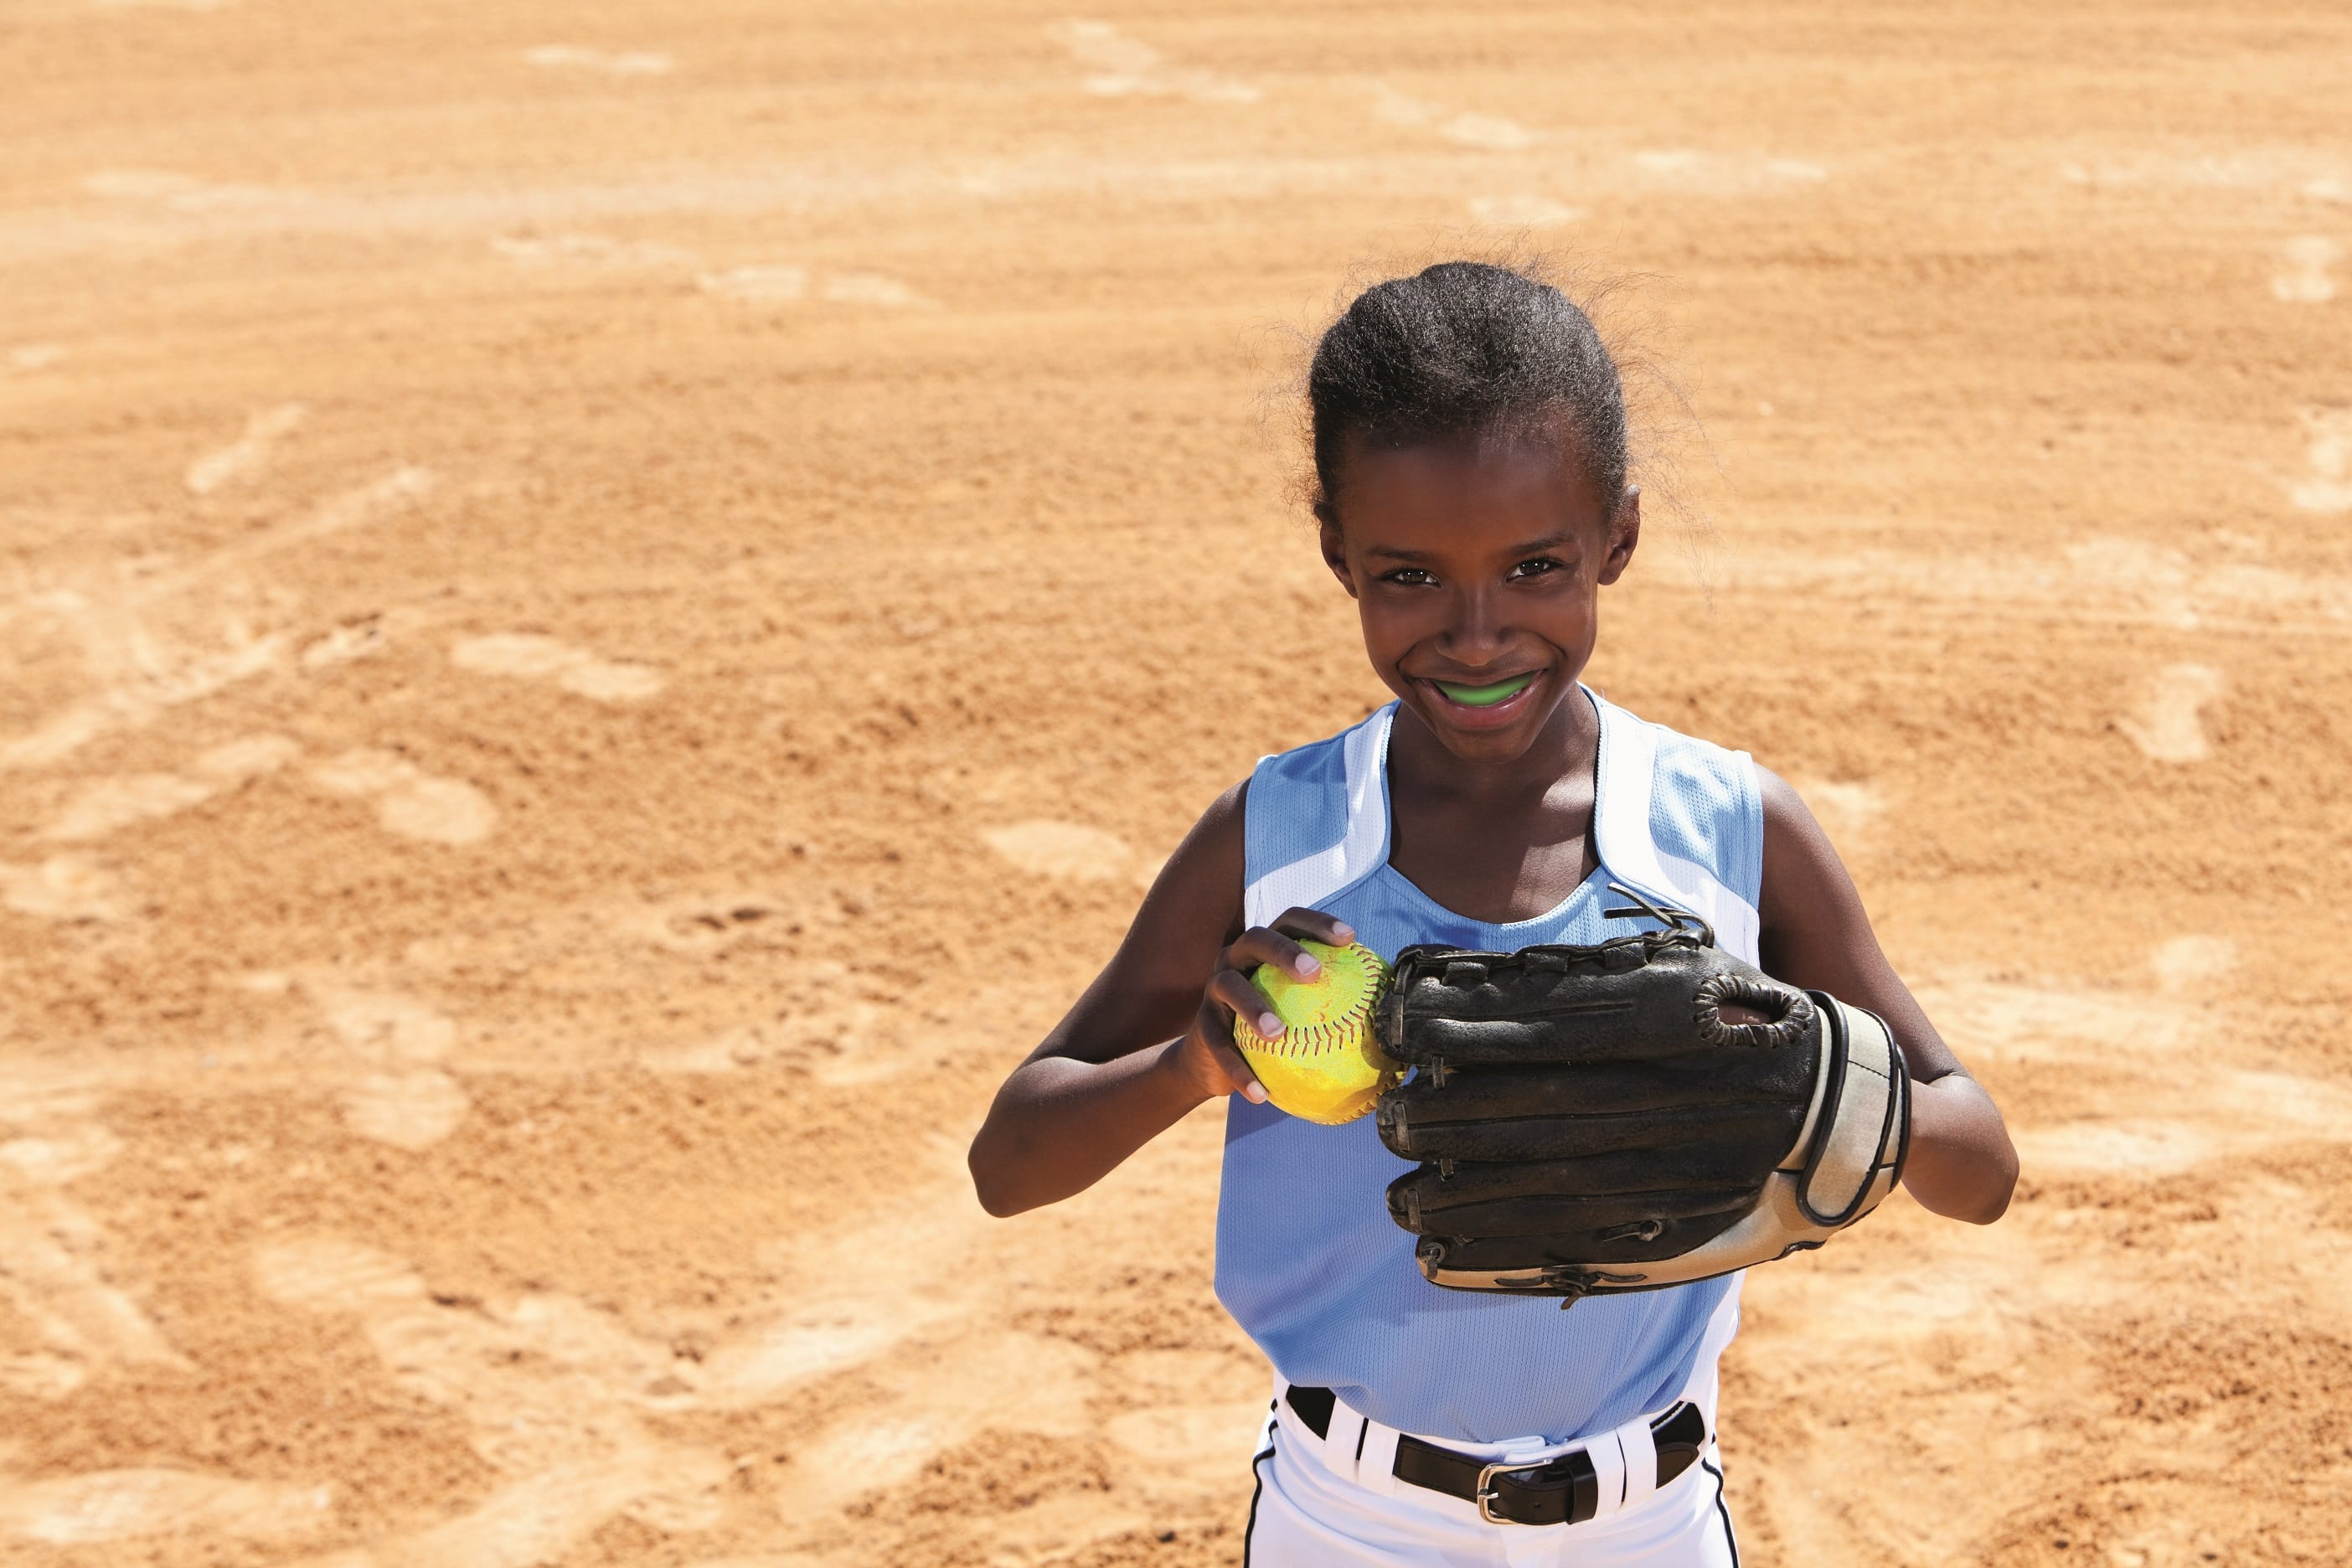 Avoid Baseball's Bad Habits and Hit a Home Run with your Oral Health